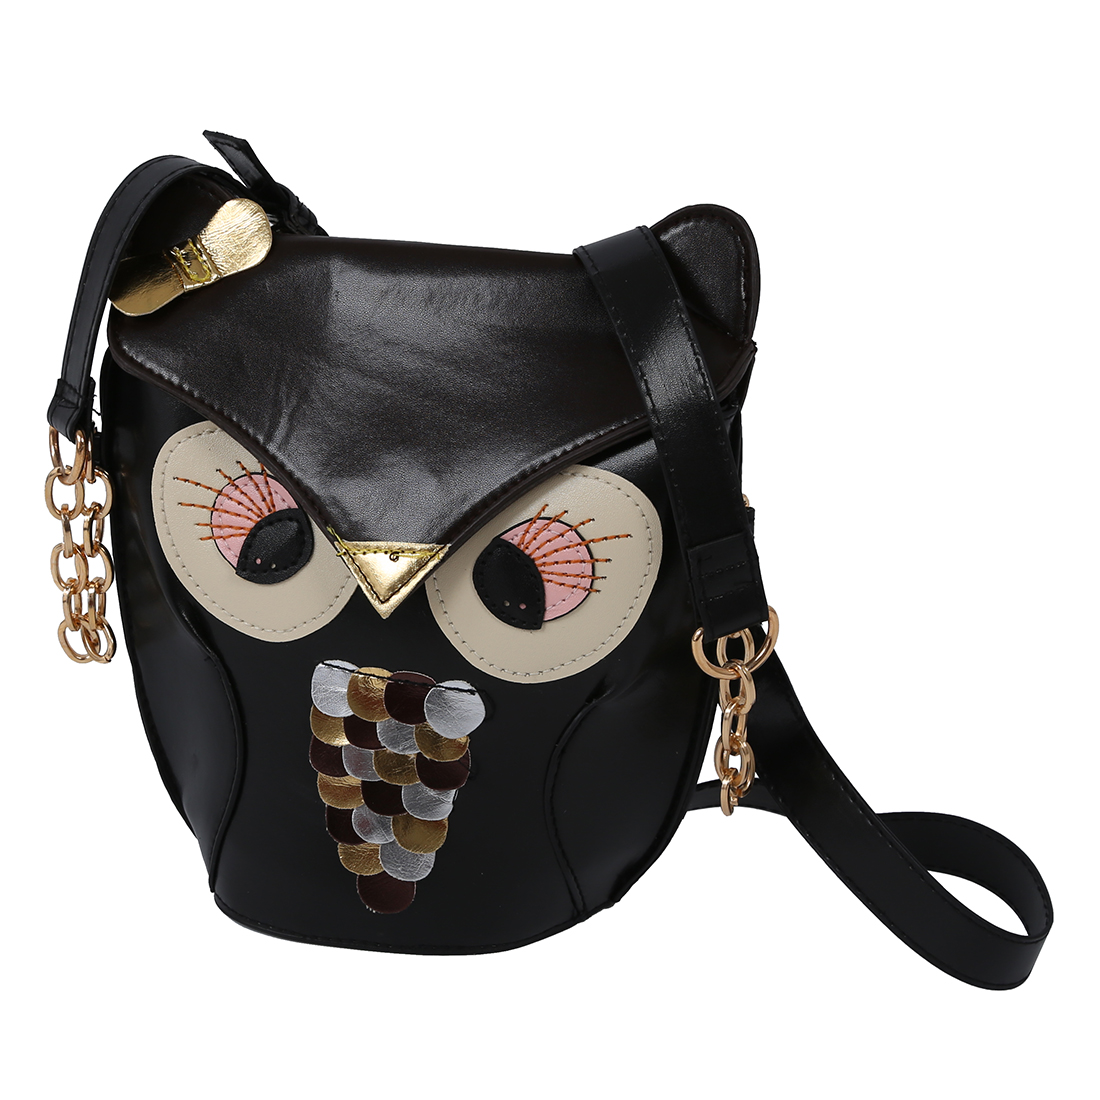 SNNY -Ladies Fashion Adjustable Owl Pattern Chain Shoulder Bag ...